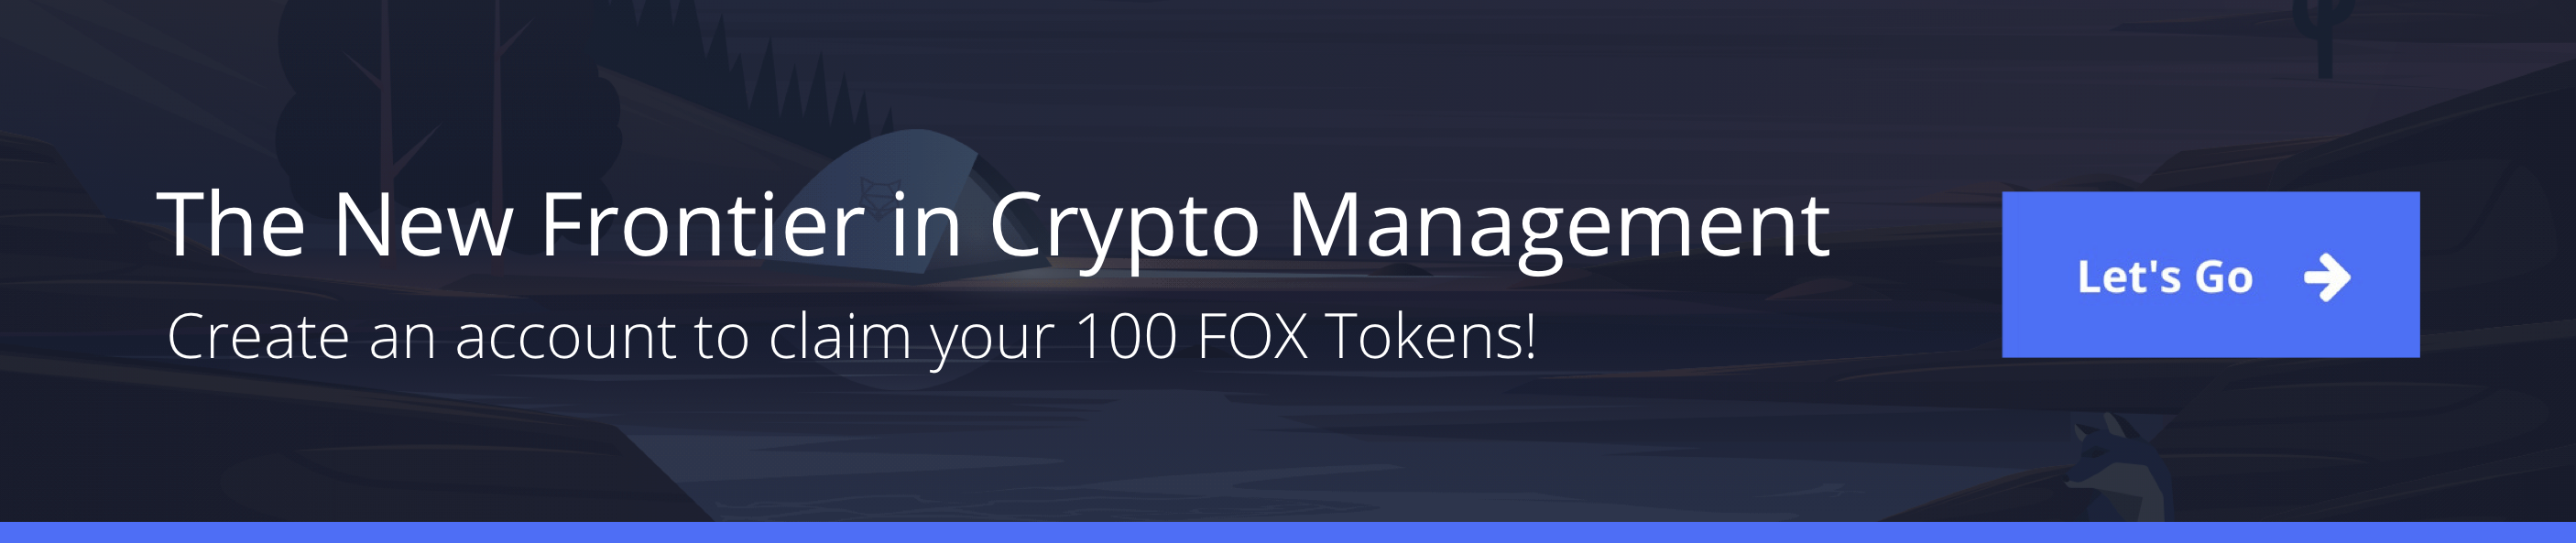 Claim your 100 FOX tokens by creating a verified ShapeShift account.